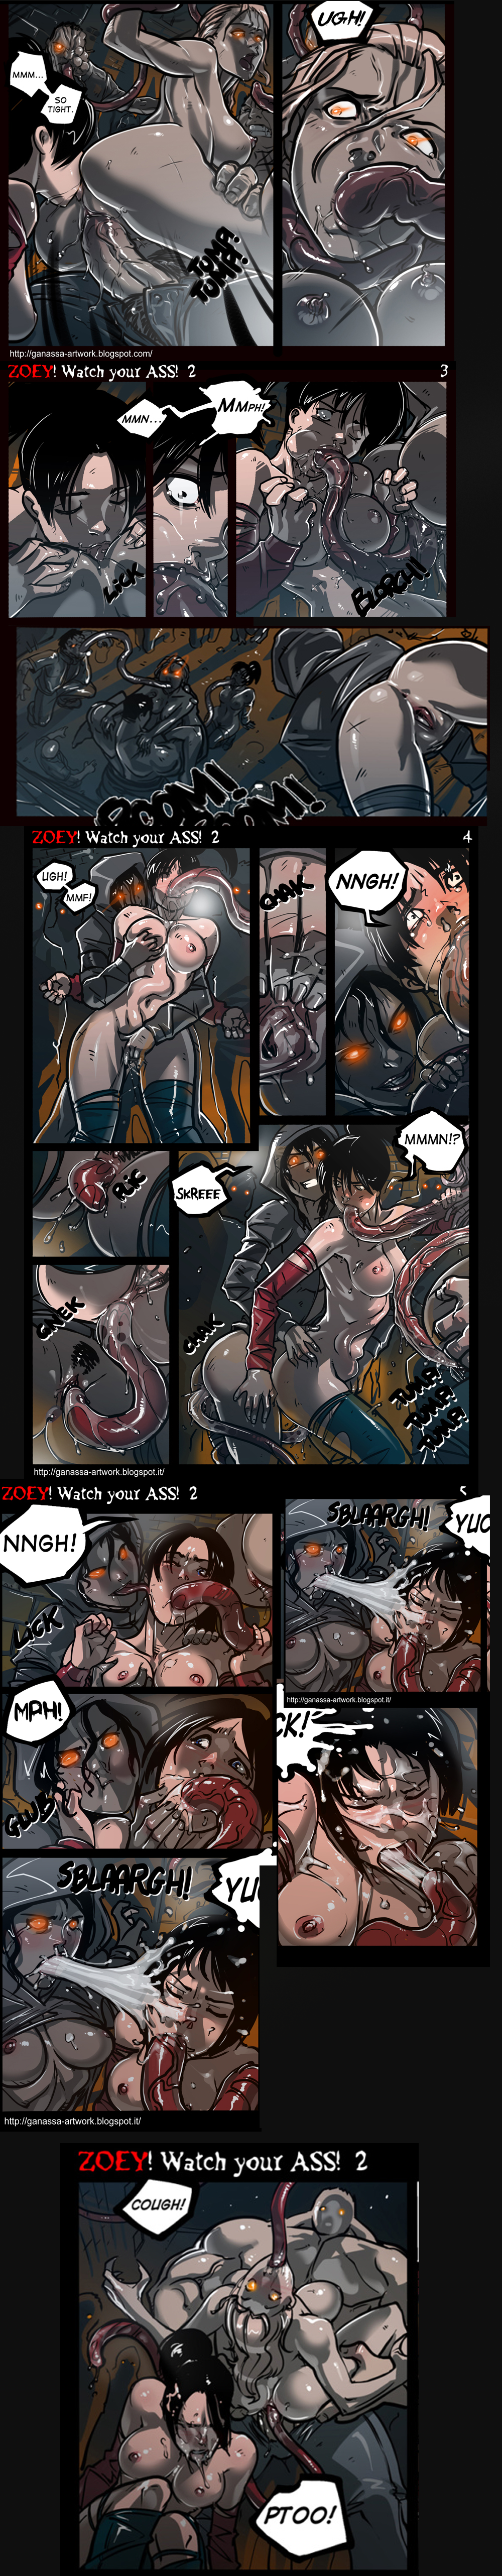 uncensored a for petals kiss the Warframe how to get the helminth charger